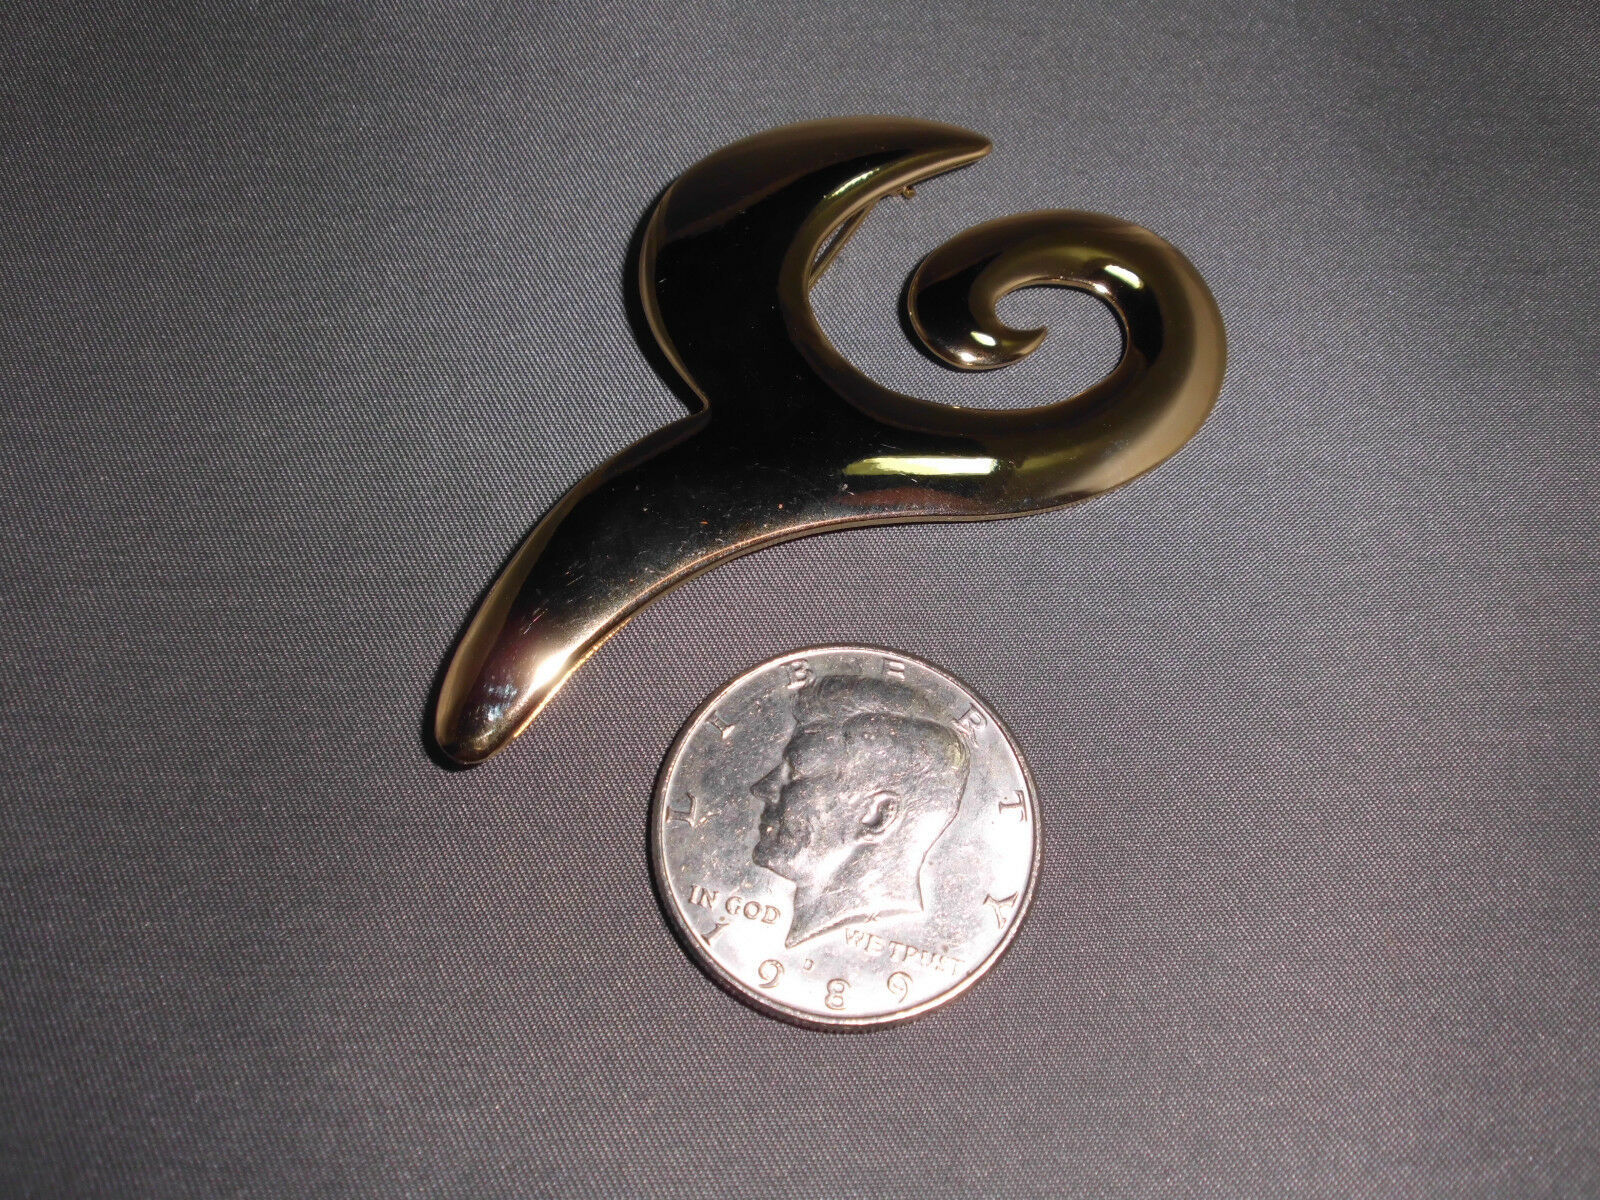 VTG Gold Tone Abstract Modern Brooch Pin - Petal Swirl Design image 2